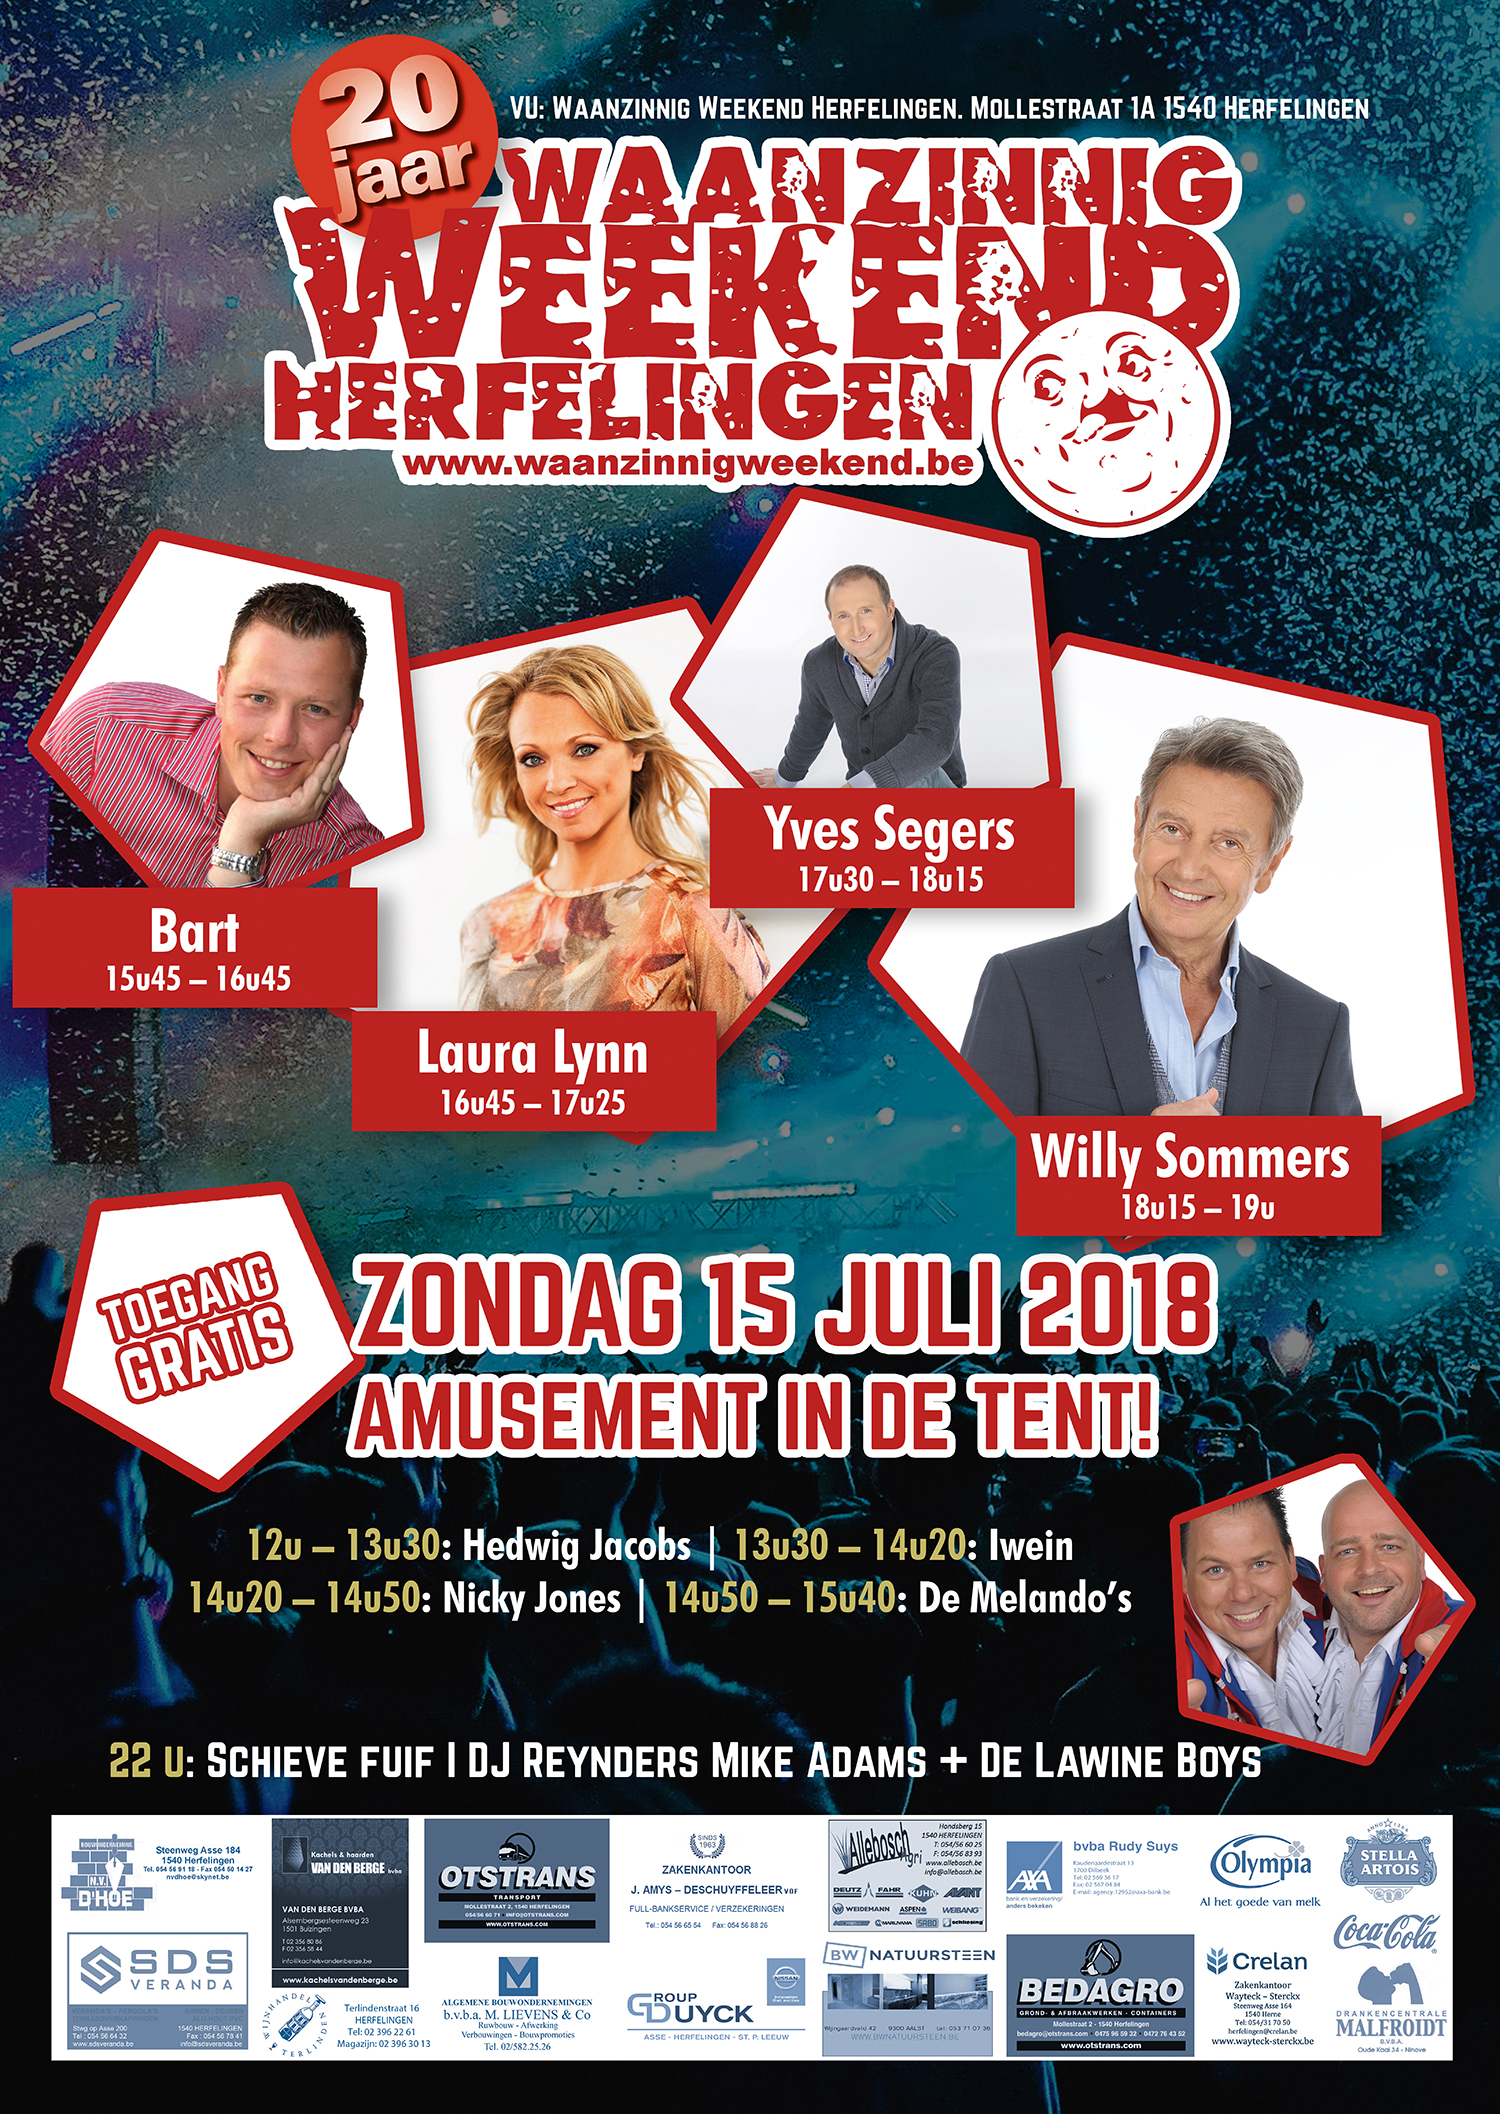 Waanzinnig Weekend Herfelingen 2018